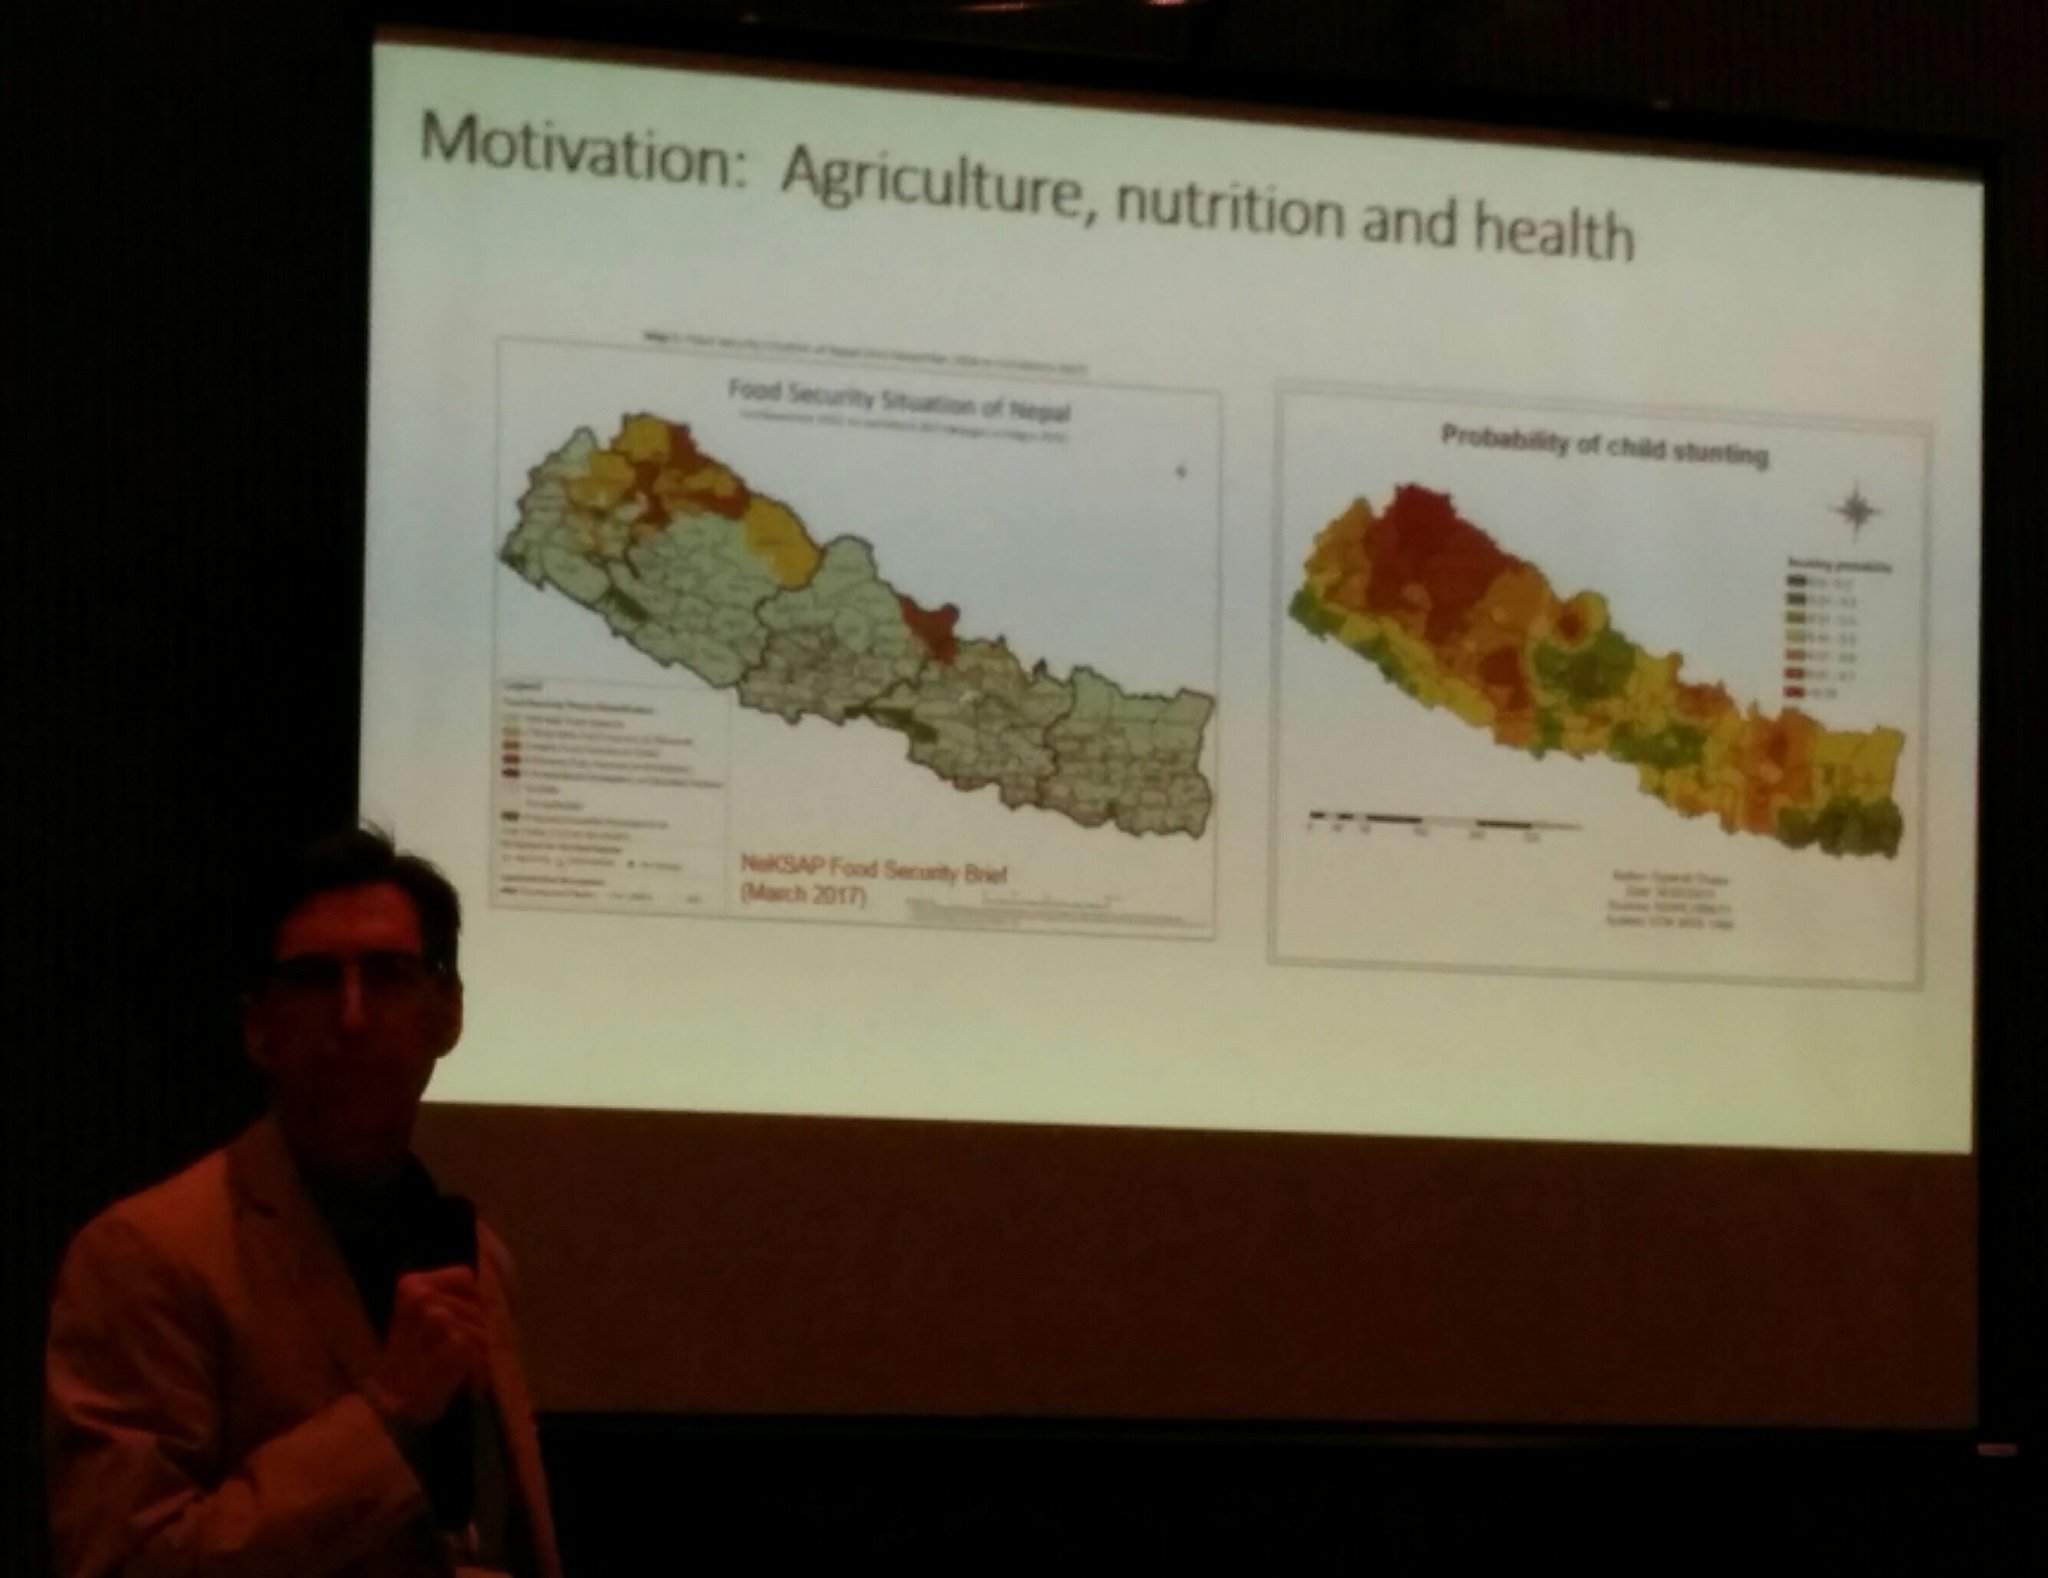 At #AgNutSympo in Kathmandu, @ProfShively from @PurdueAgEcon presents economic factors behind malnutrition in Nepal https://t.co/NdL7mN9jfJ